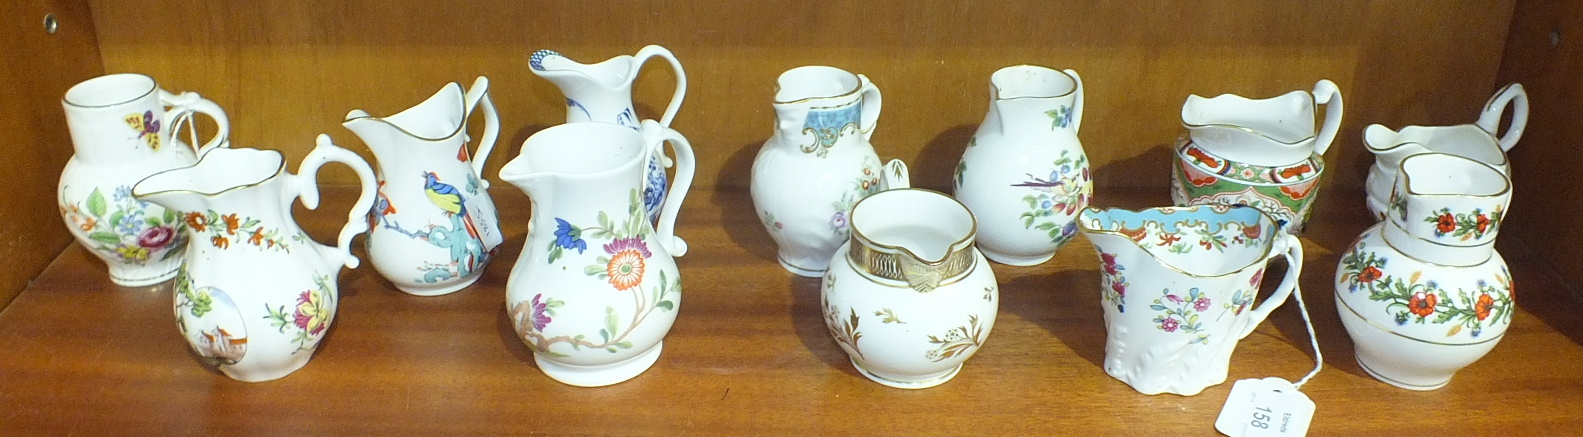 Lot 158 - Twelve Royal Worcester porcelain jugs from the 'Historic Jugs' collection, tallest 9.5cm, (12).